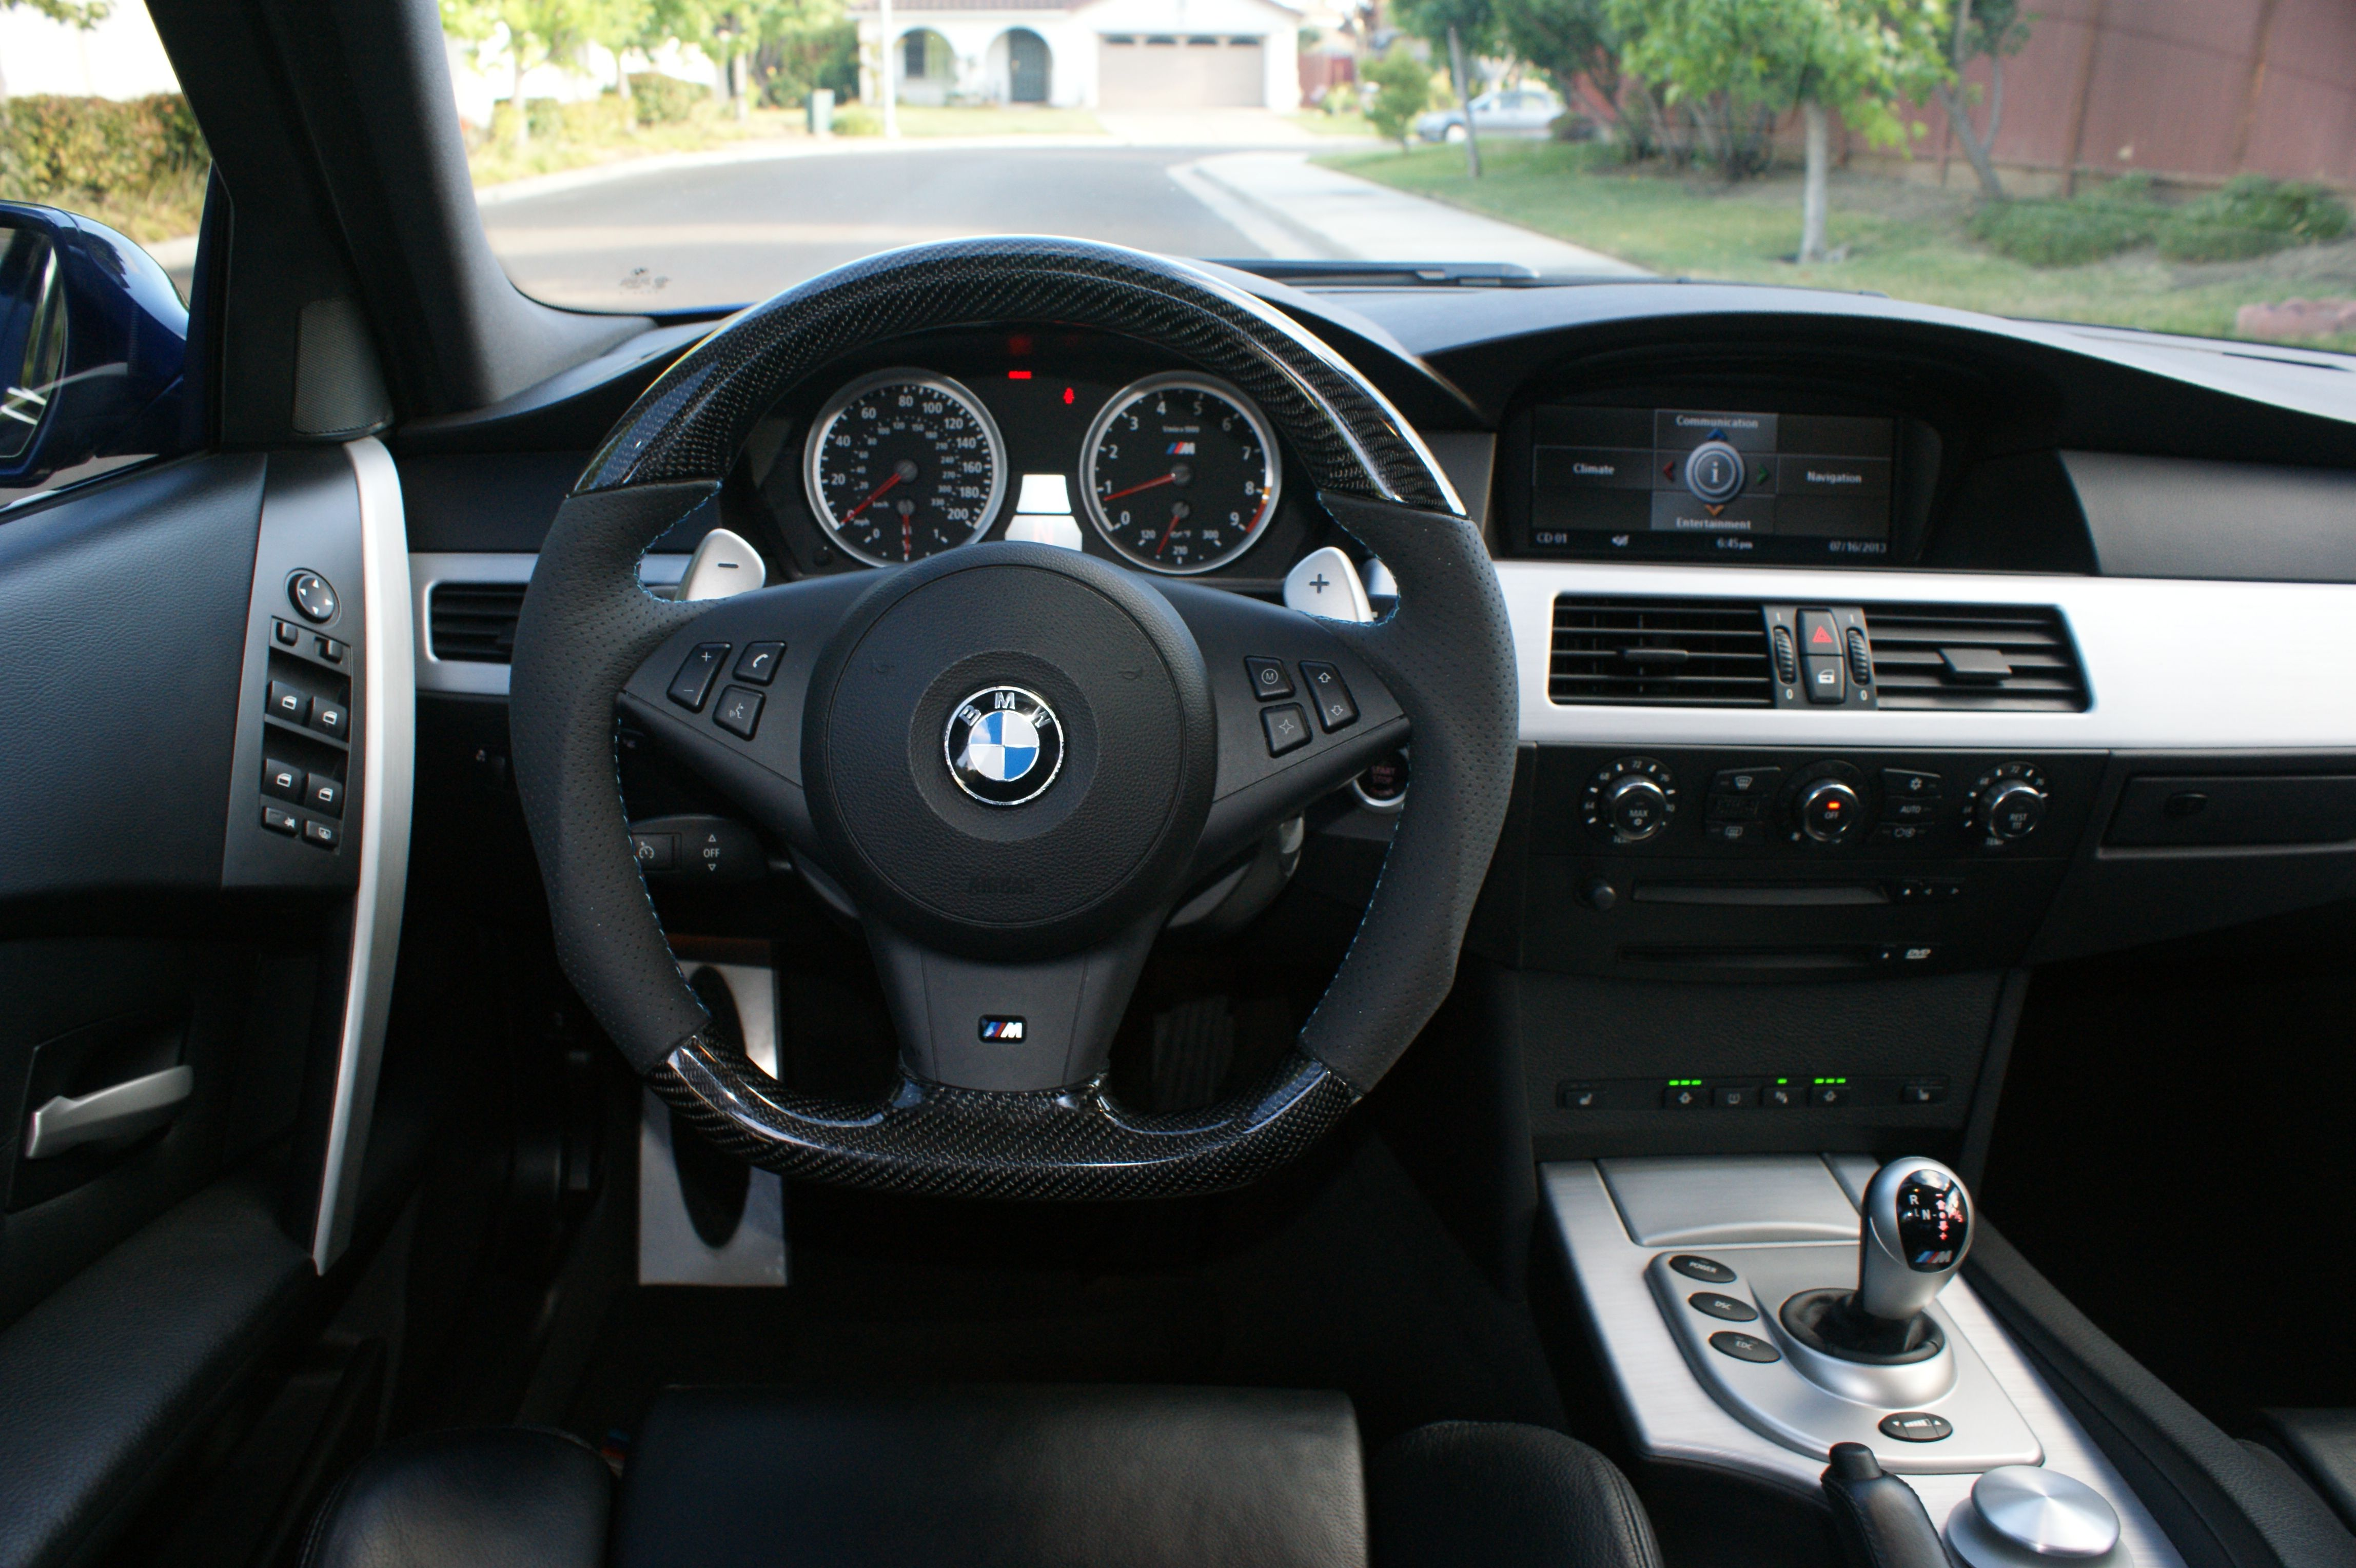 Interieur M Performance Bmw E60 M5 Interior 5 Series 2003 2010 Join Me At Tomhandy Co